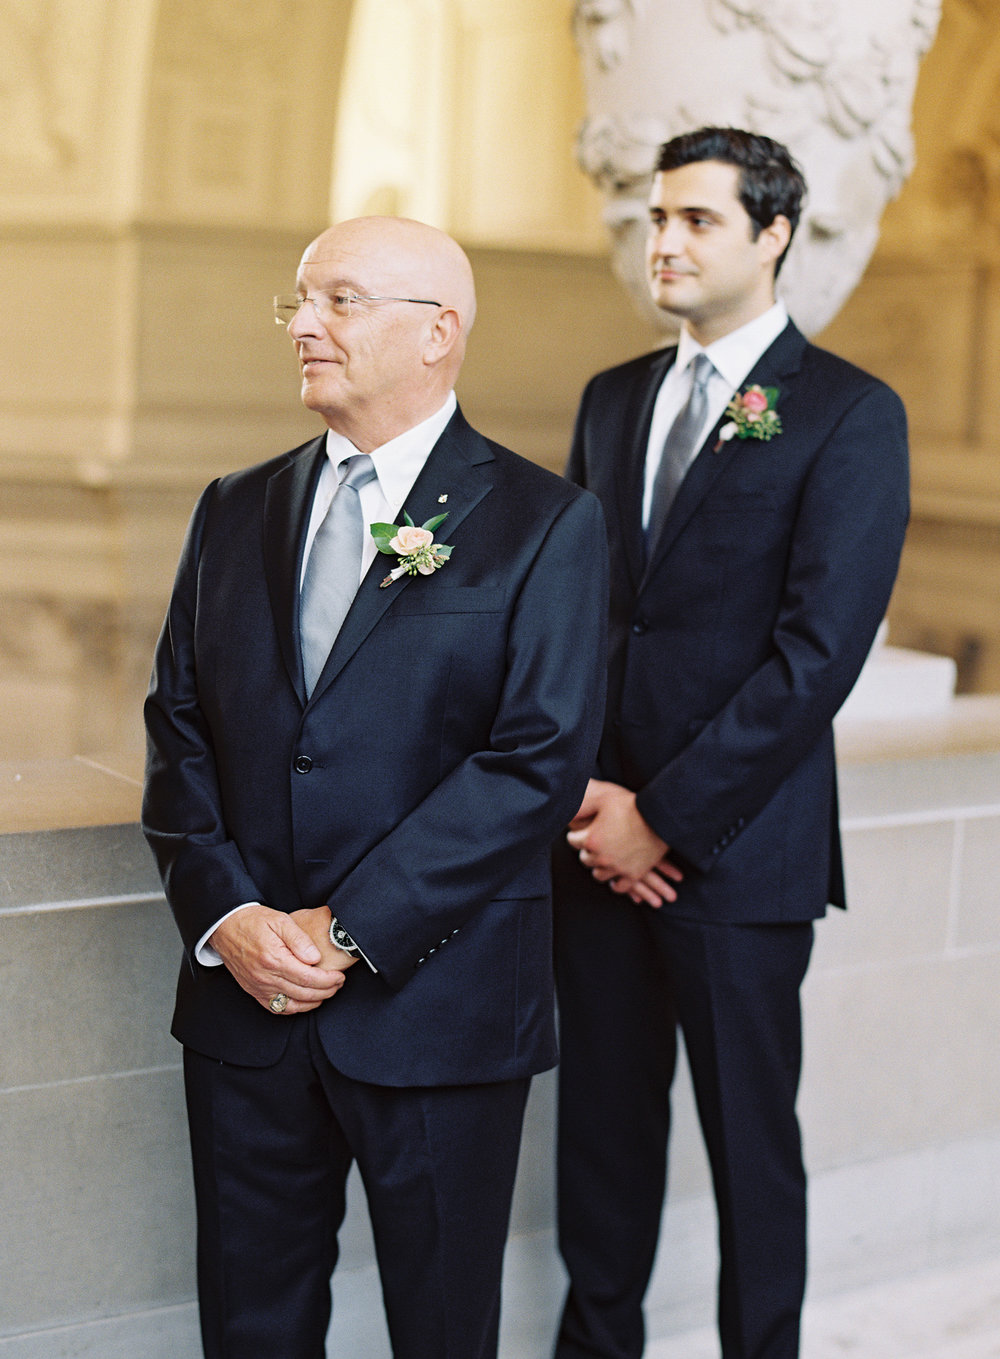 Meghan Mehan Photography - California Wedding Photographer | San Francisco City Hall Wedding 097.jpg